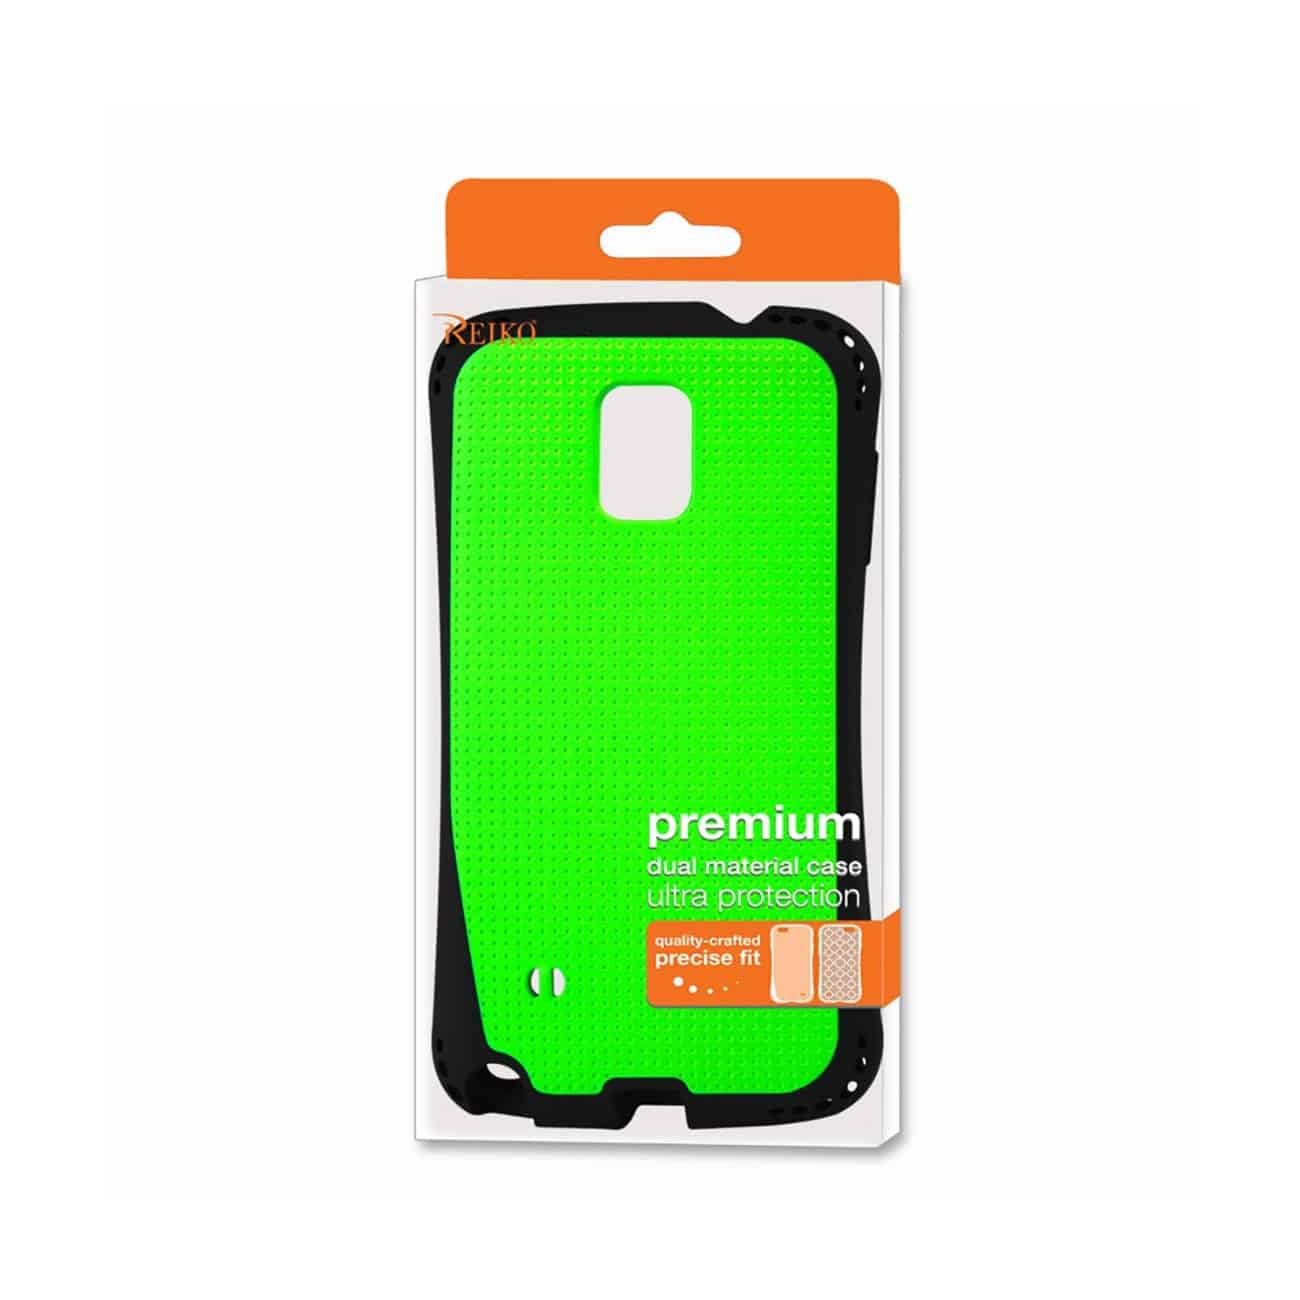 SAMSUNG GALAXY NOTE 4 DROPPROOF AIR CUSHION CASE WITH CHAIN HOLE IN GREEN